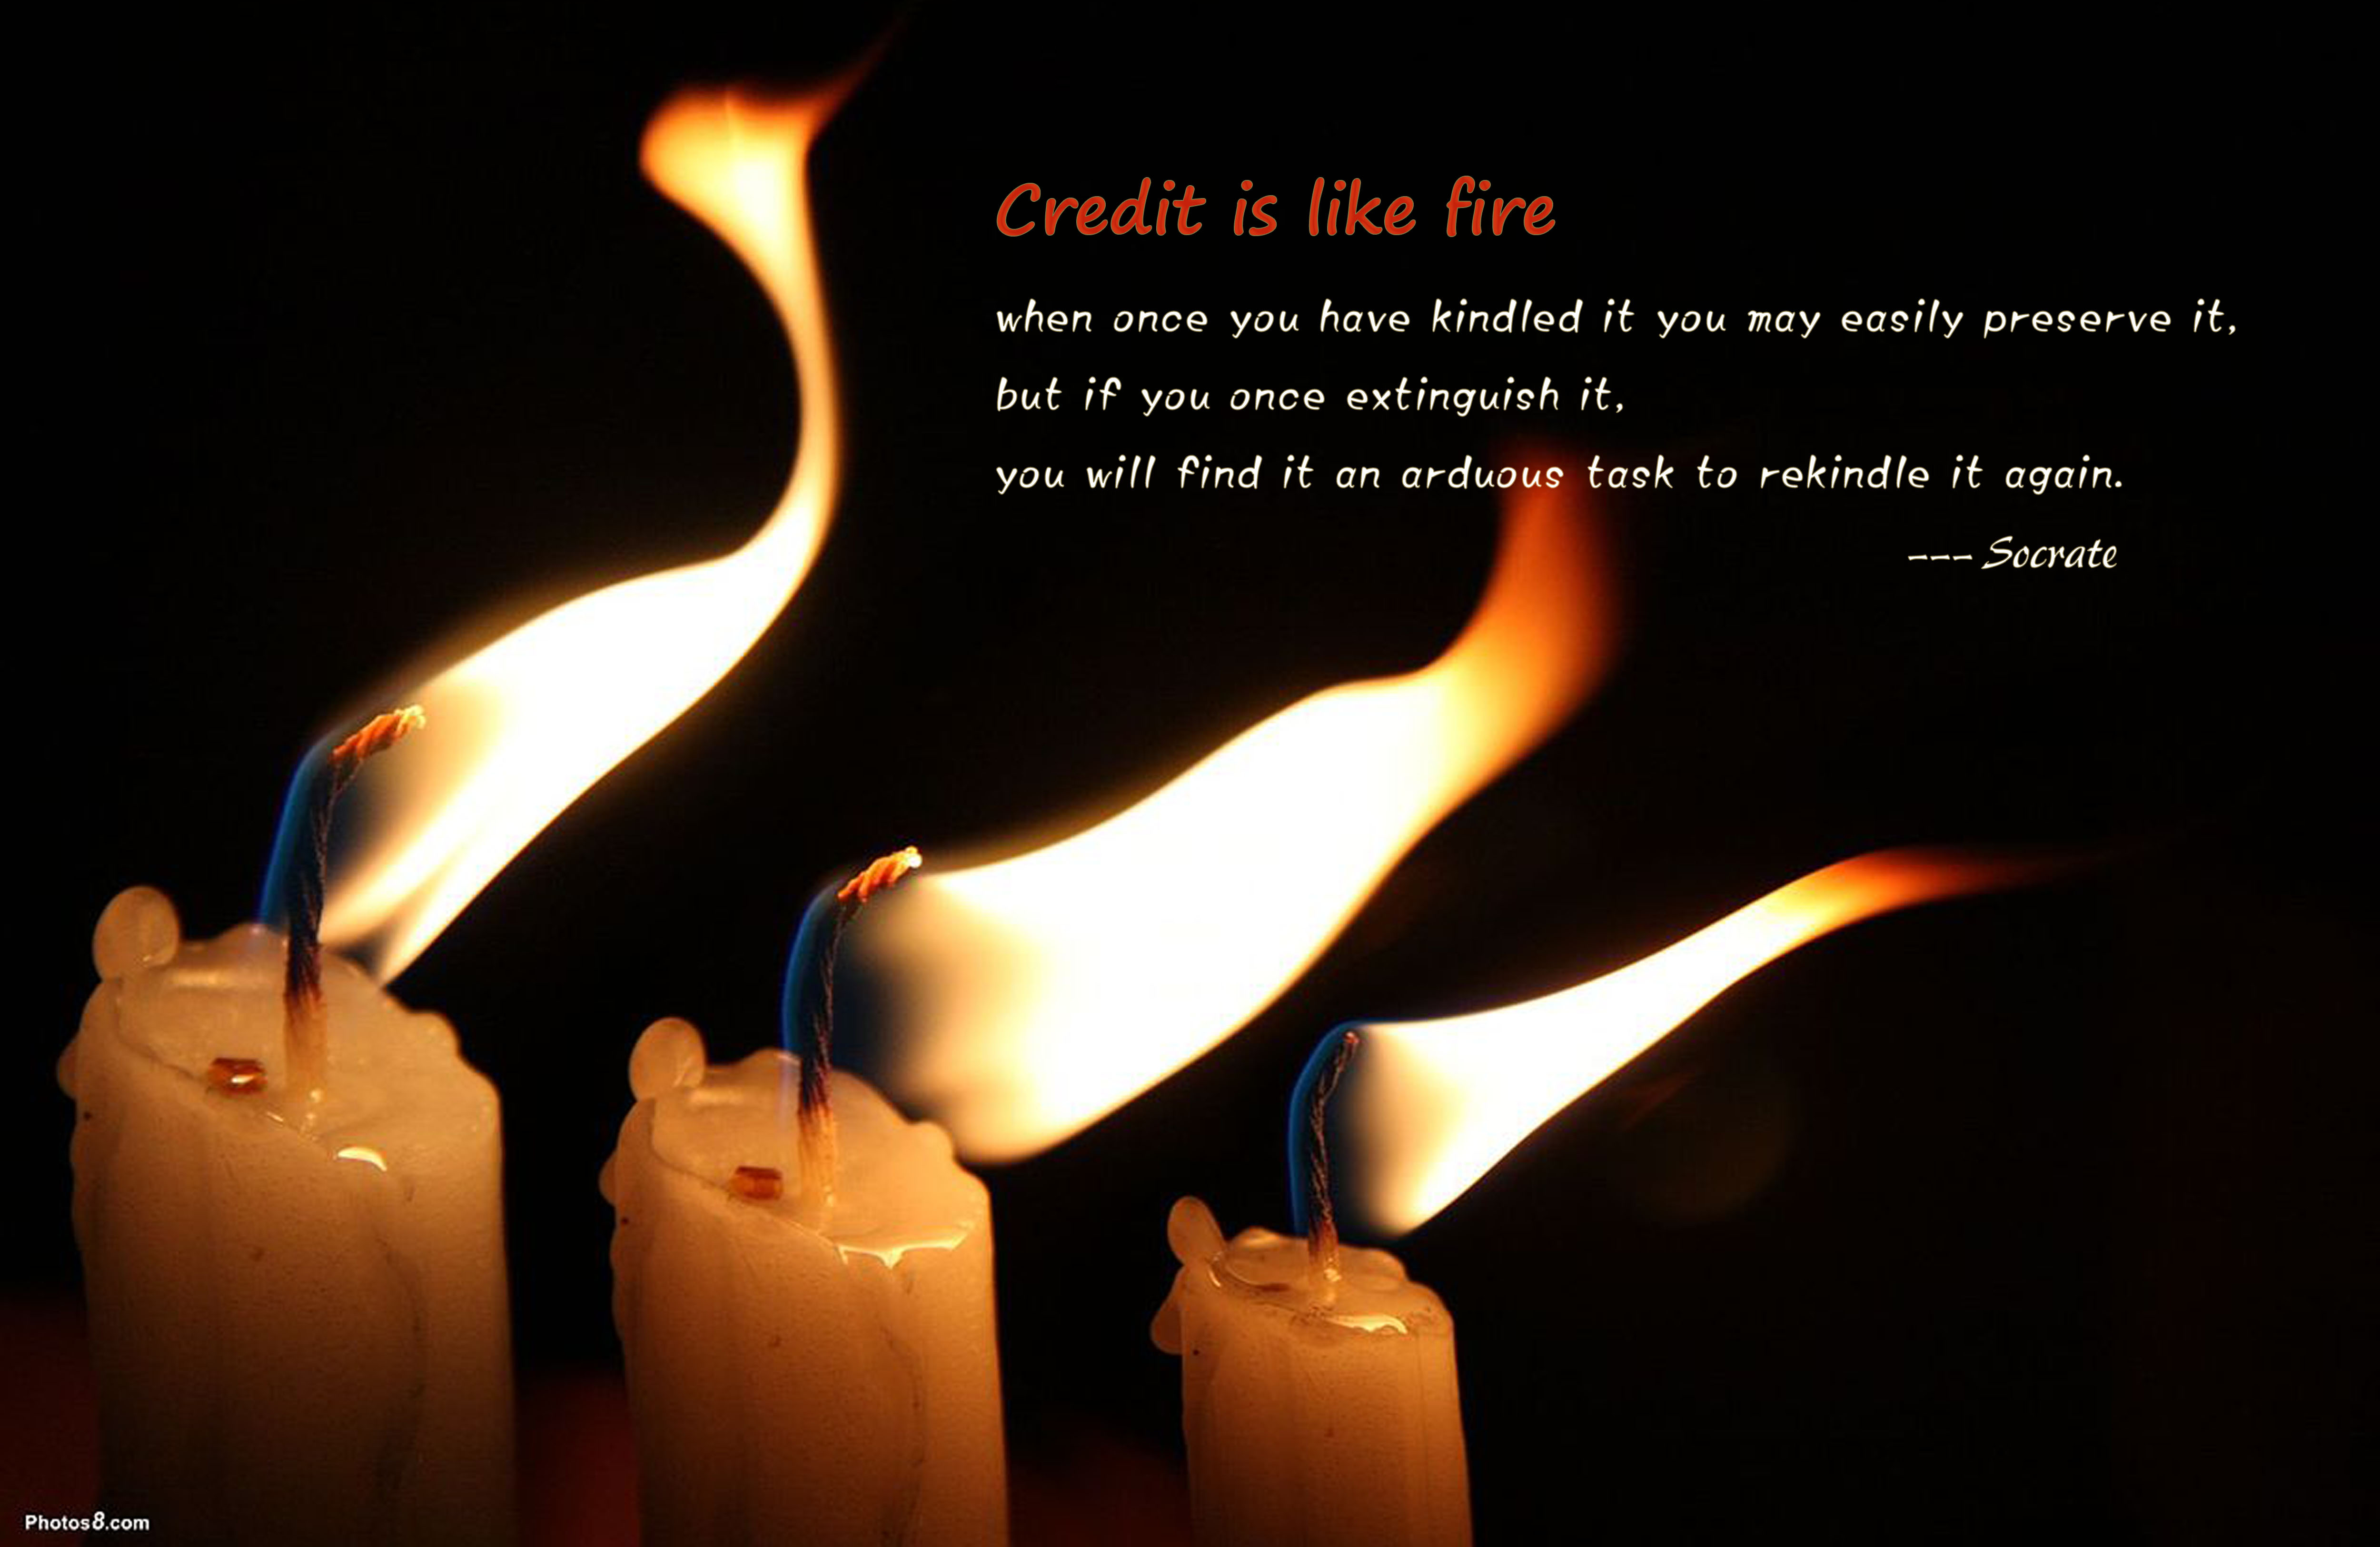 Candles_flame_in_the_wind